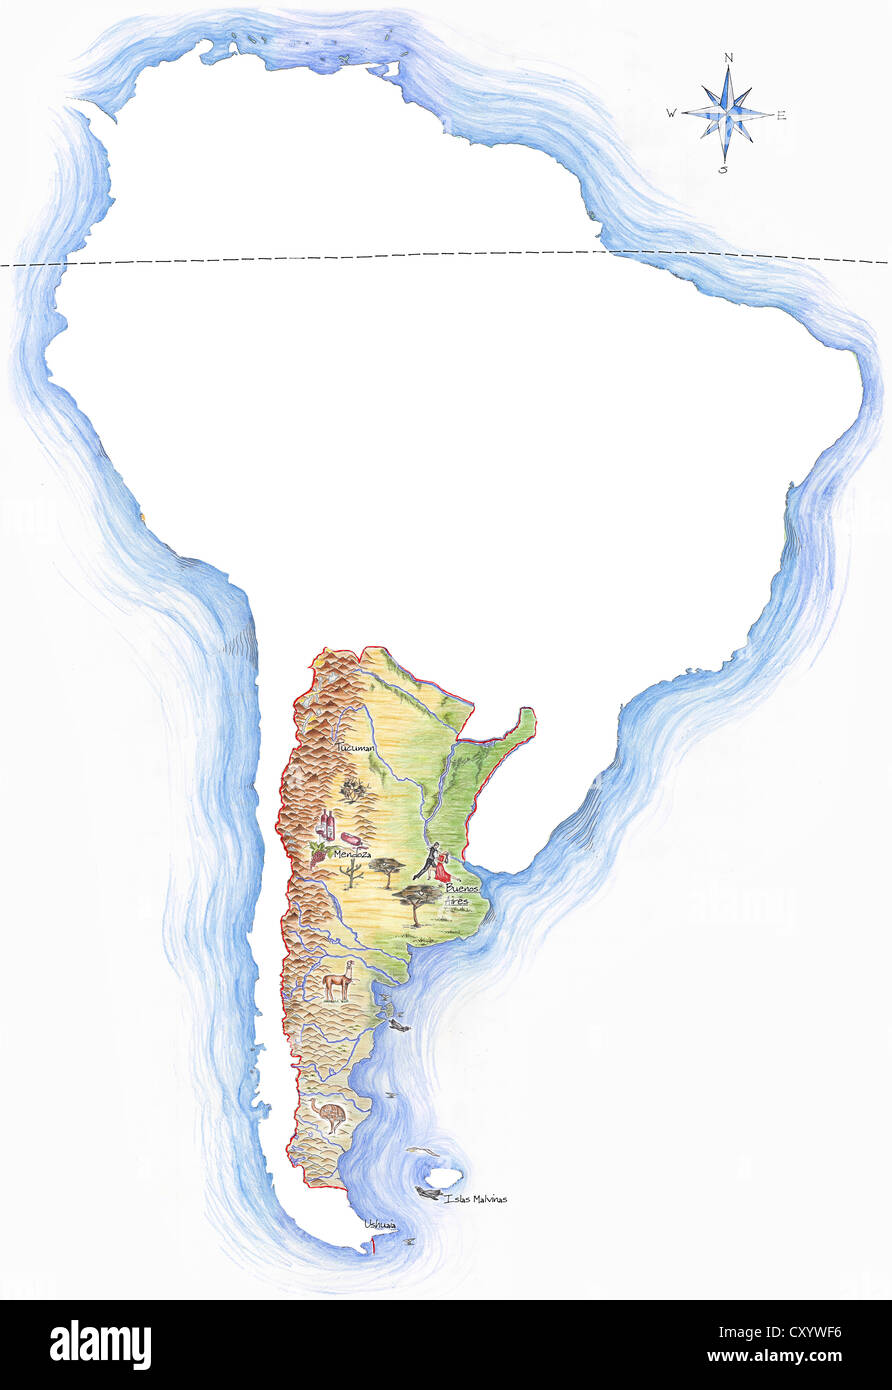 Highly Detailed Handdrawn Map Of Argentina Within The Outline Of - Argentina map outline